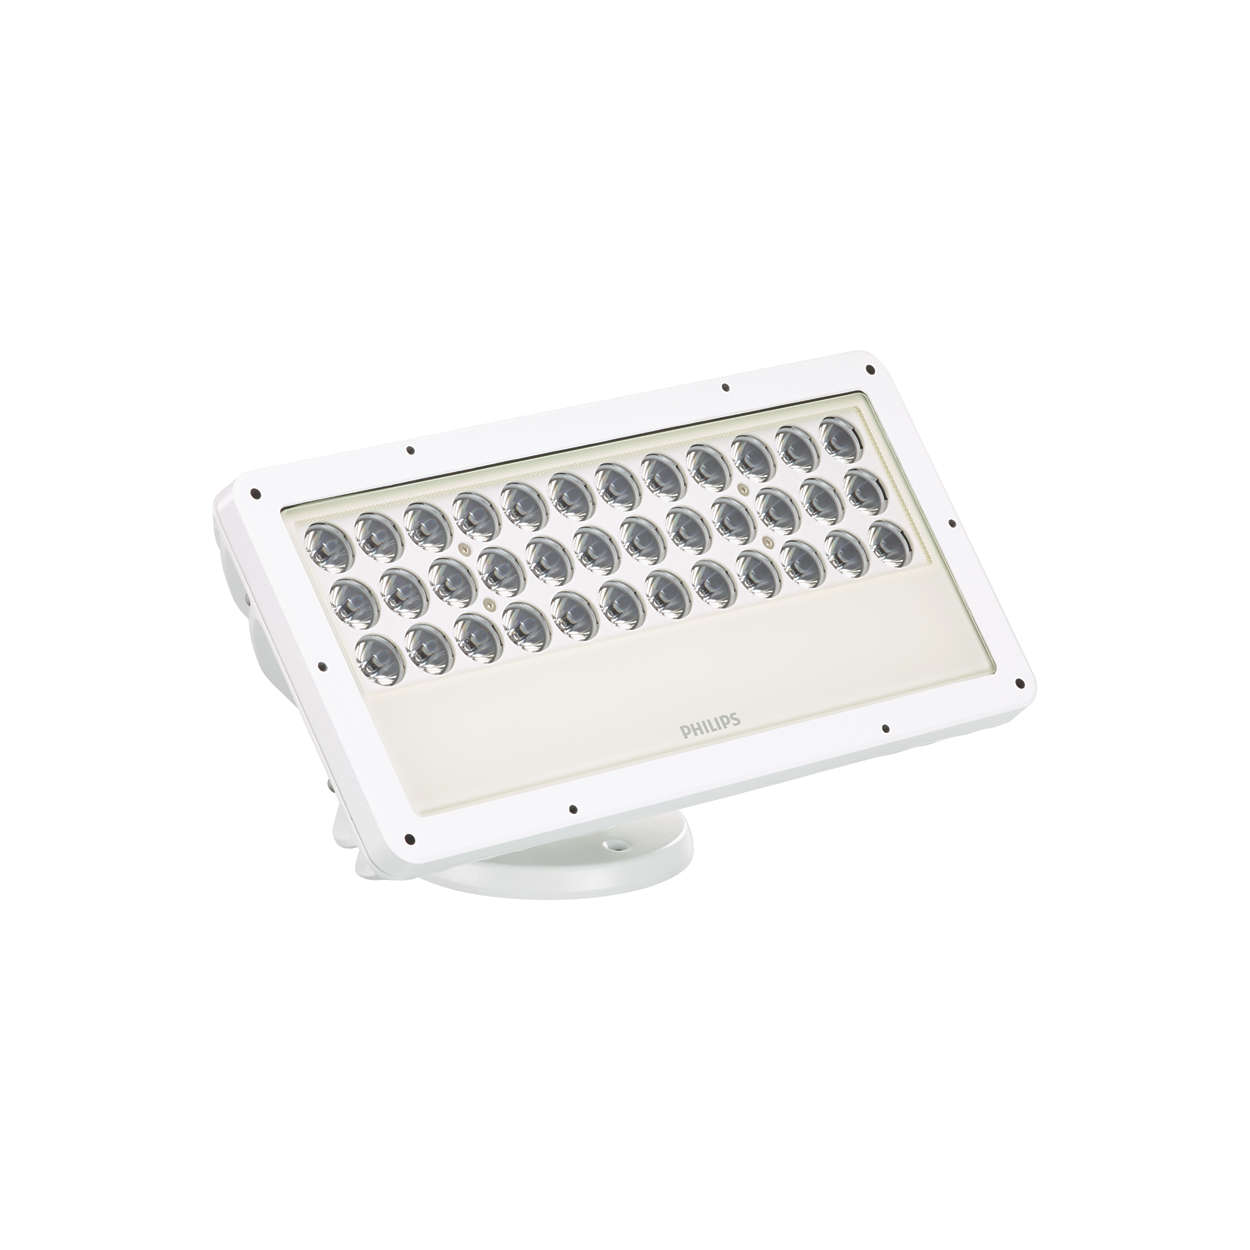 ColorBlast IntelliHue Powercore gen4 - Customizable exterior LED flood fixture with intelligent color light